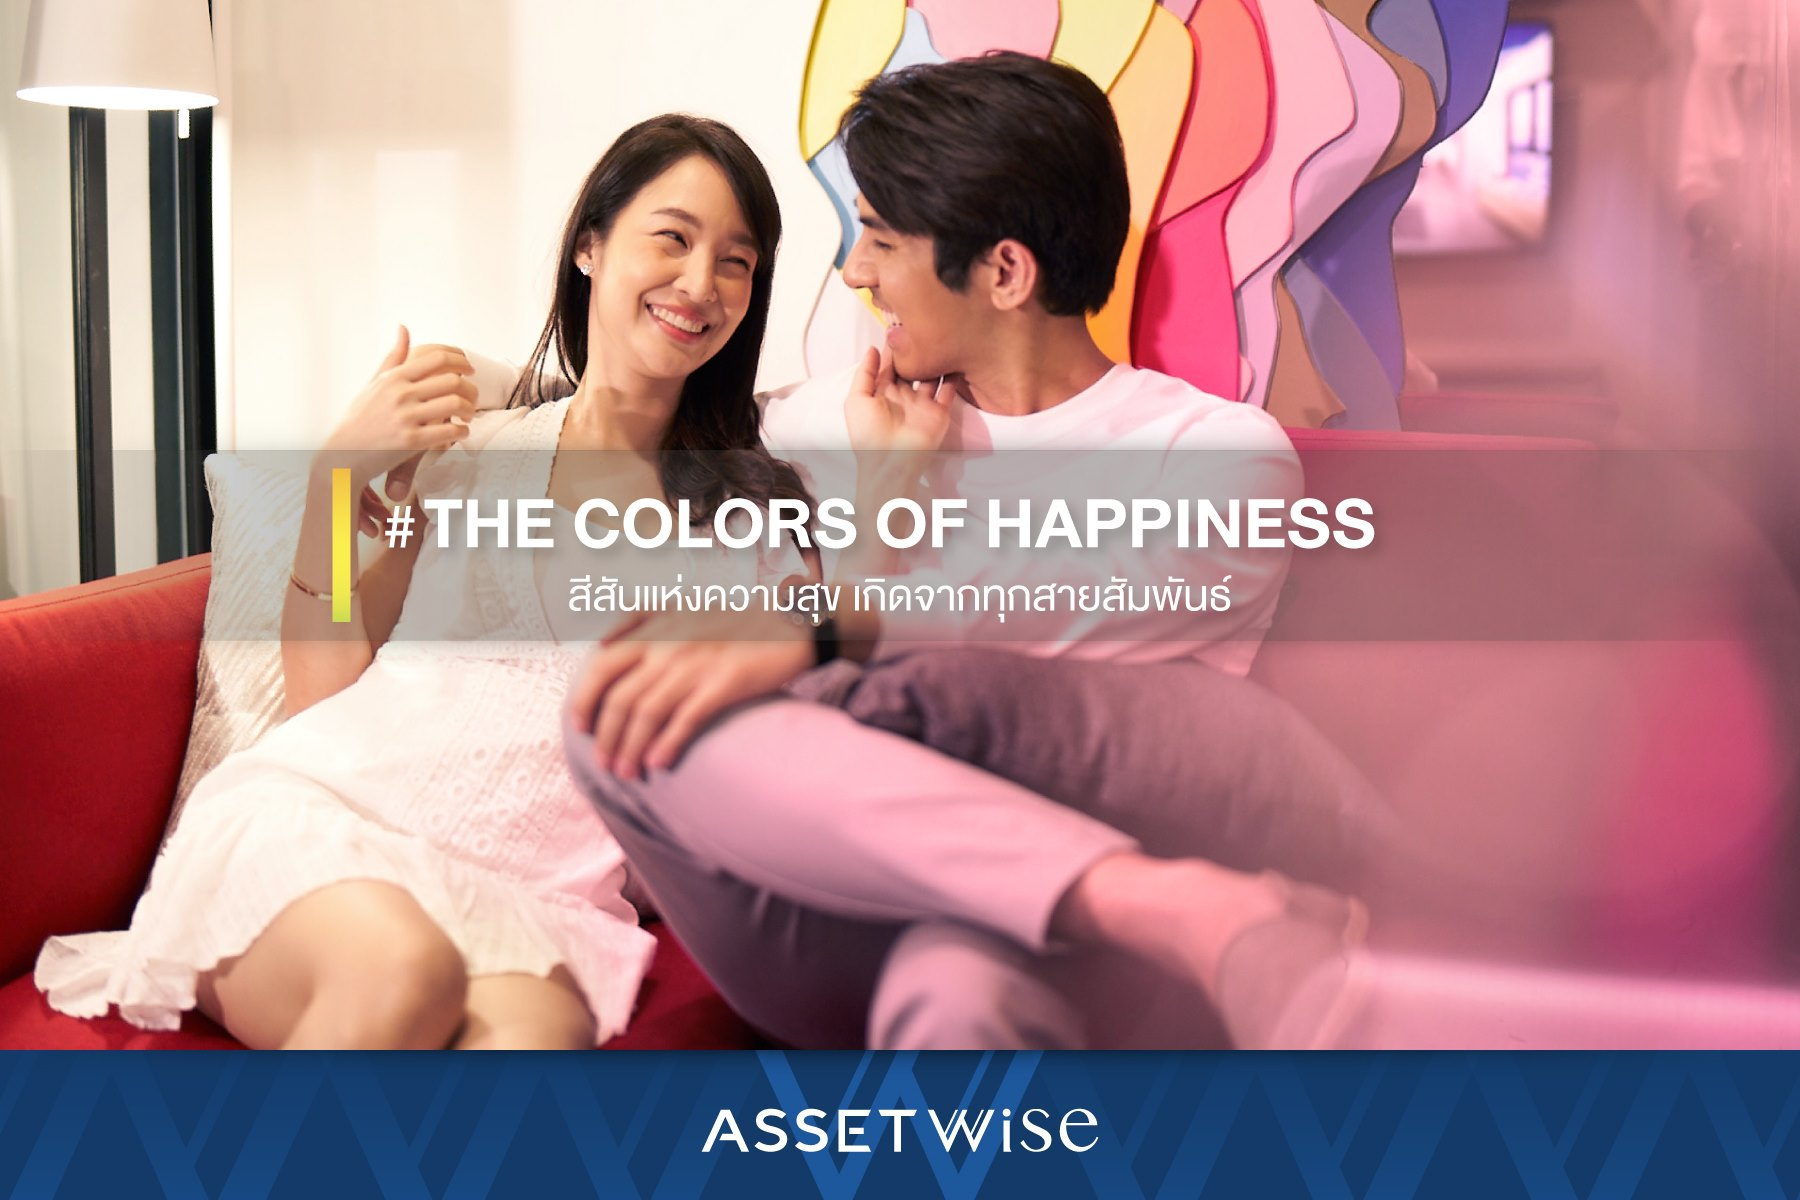 The Colors of Happiness สีสันแห่งความสุข